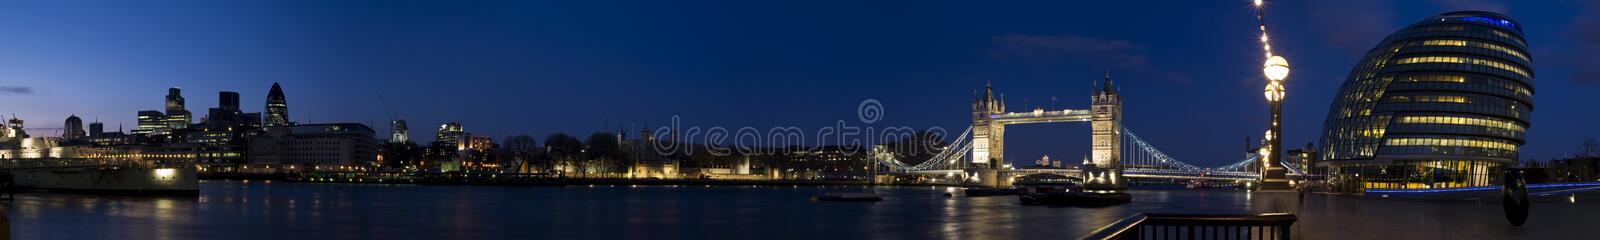 london cantral ogromna panorama obrazy royalty free